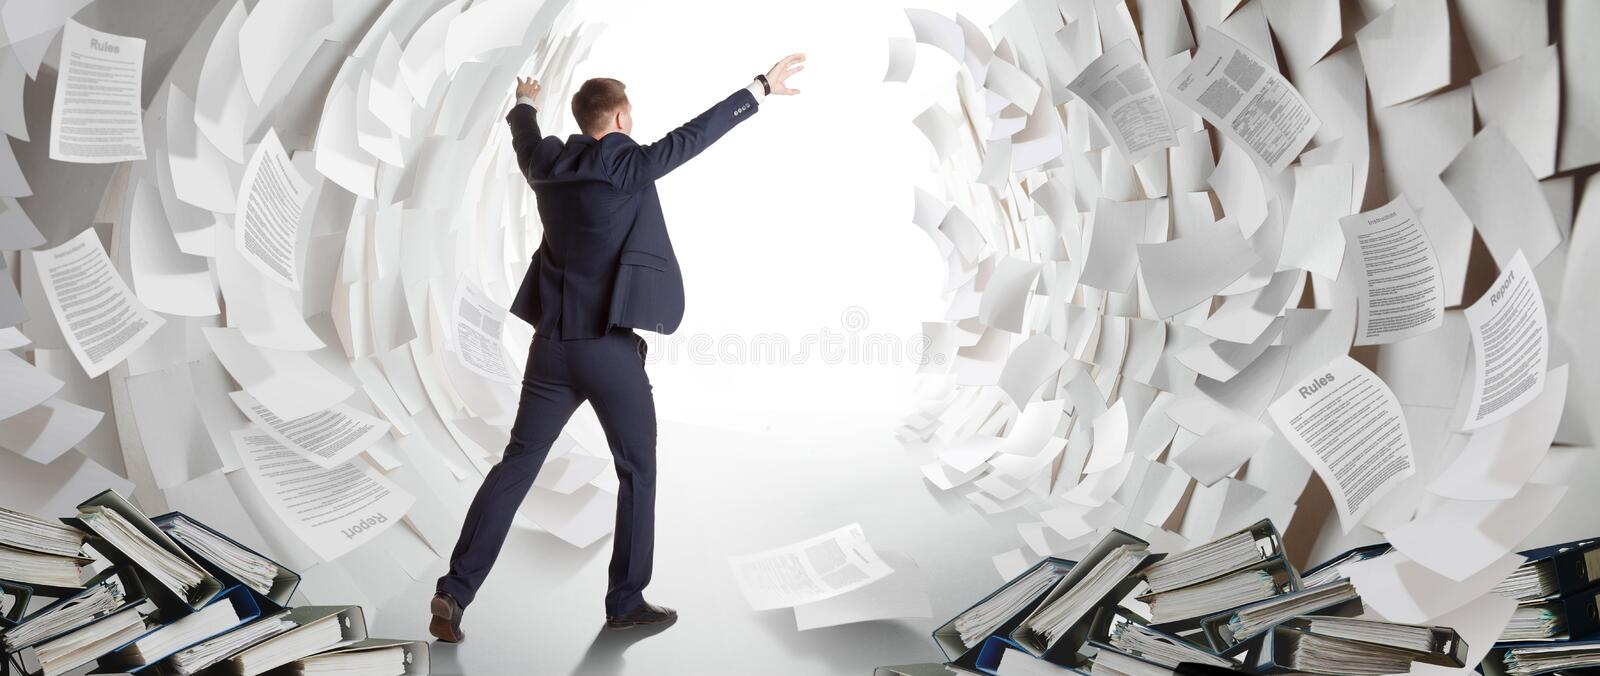 End of heavy office work stock image